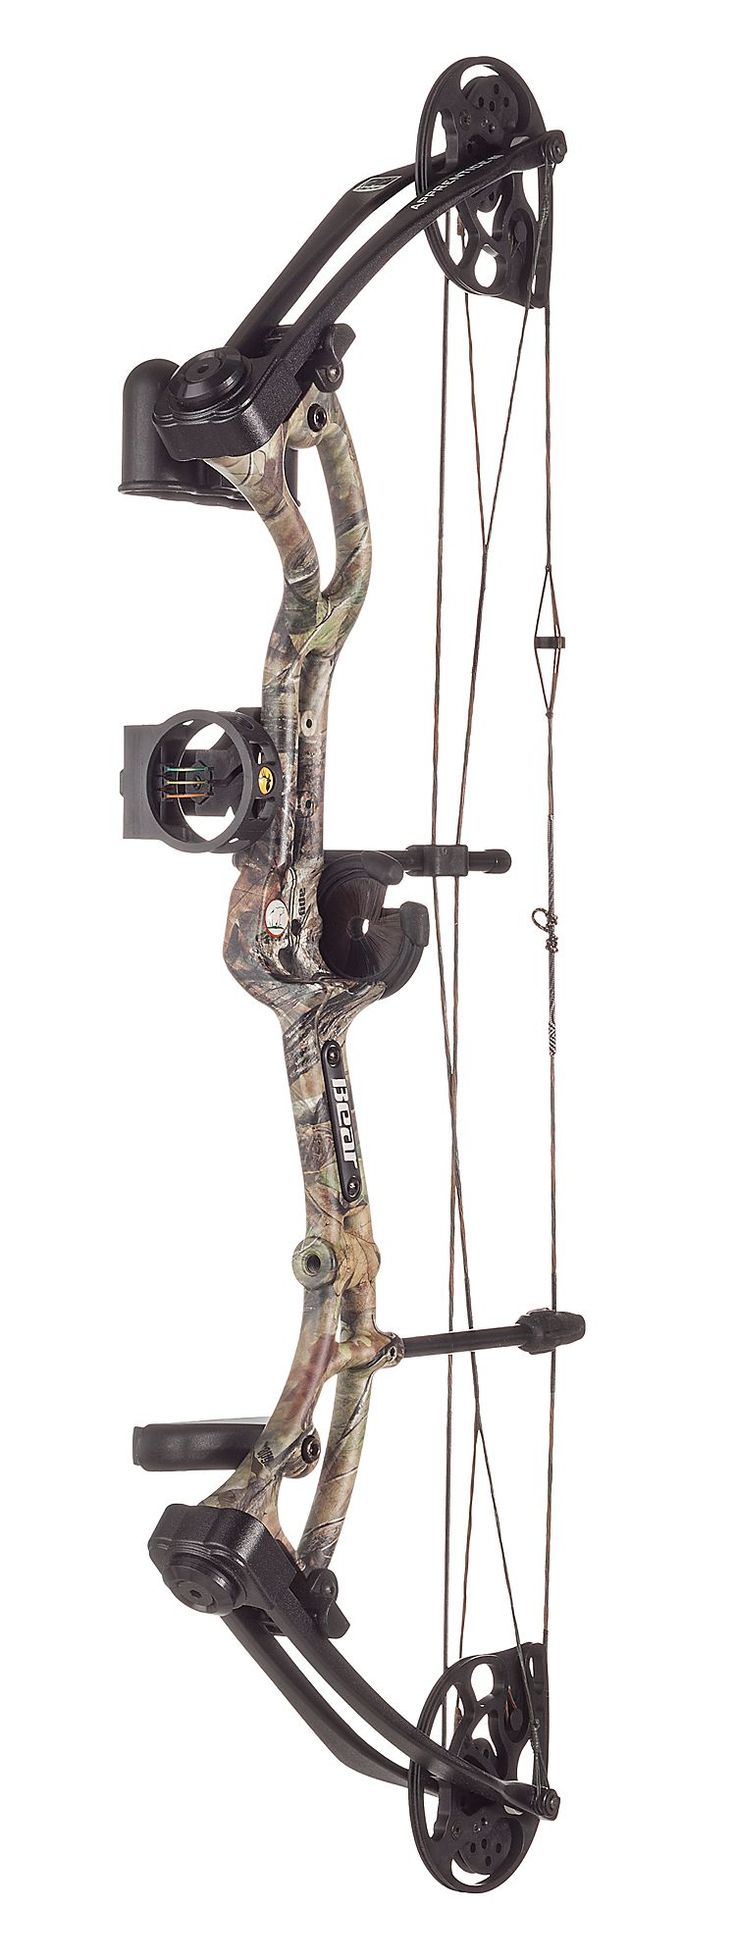 Bear® Archery Apprentice 3 RTH Compound Bow Packages | Bass Pro Shops